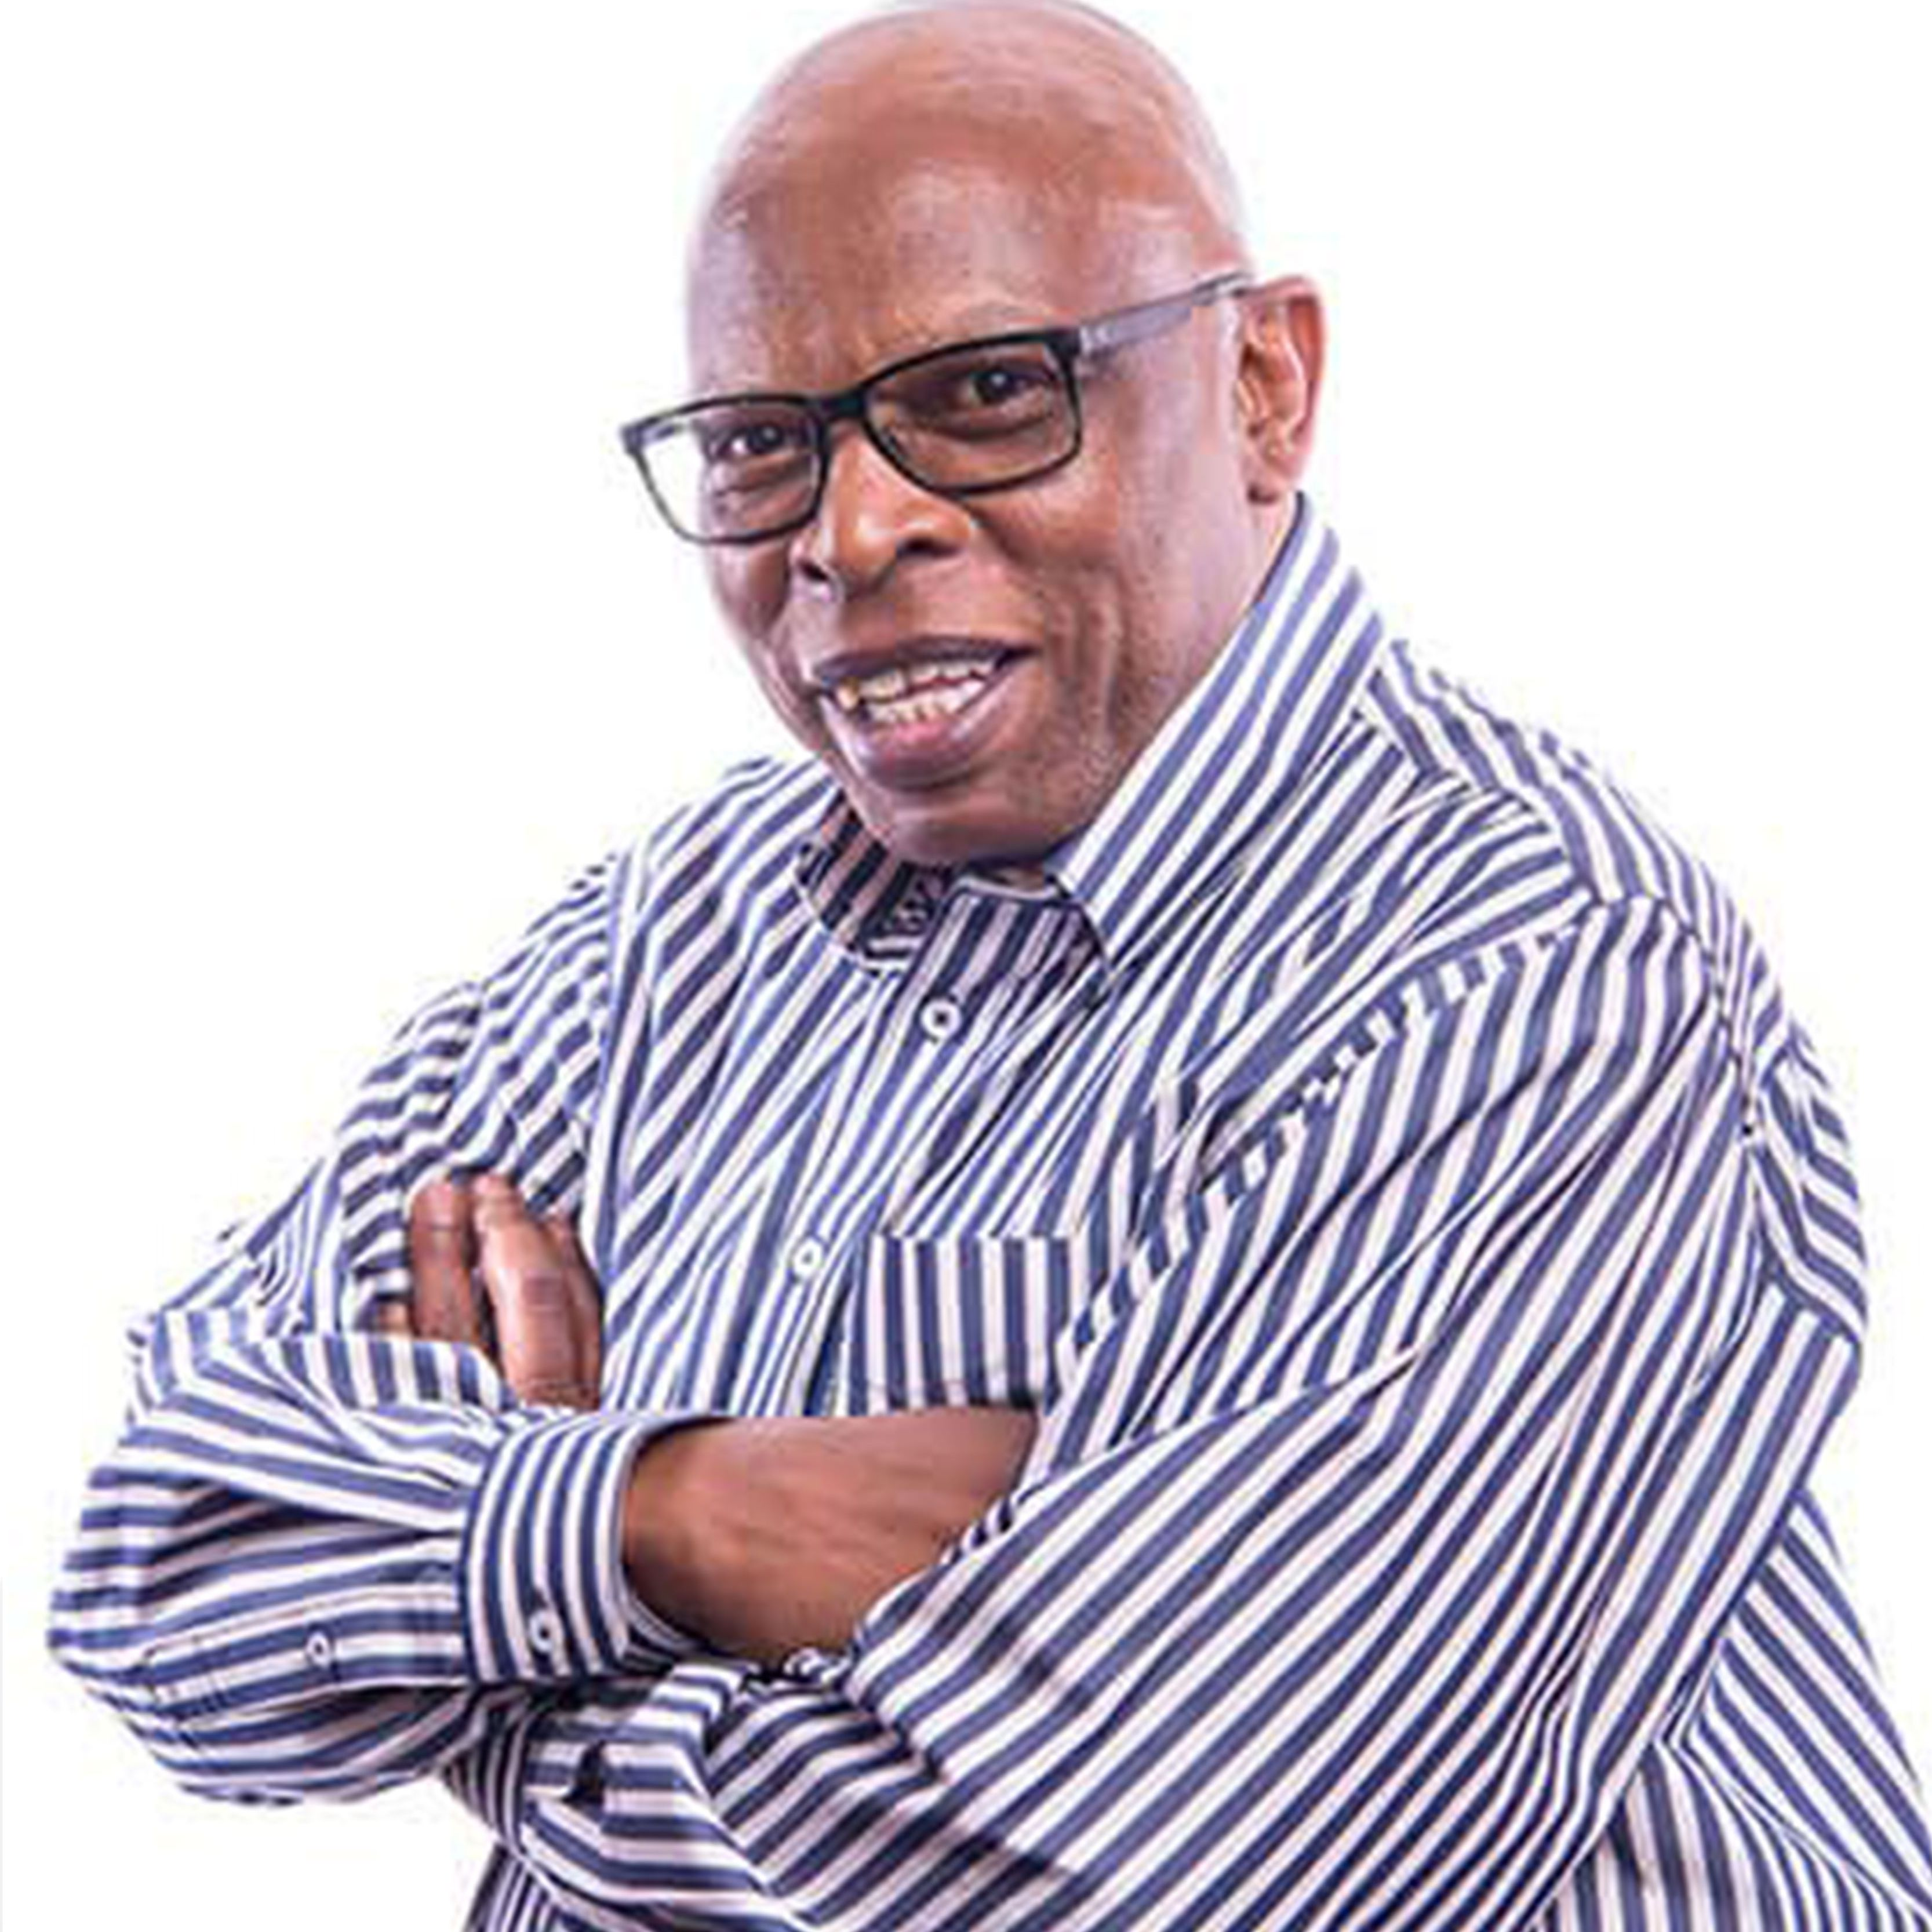 Profile photo of Daniel Tshabalala, Industrial Relations Executive at Astral Foods